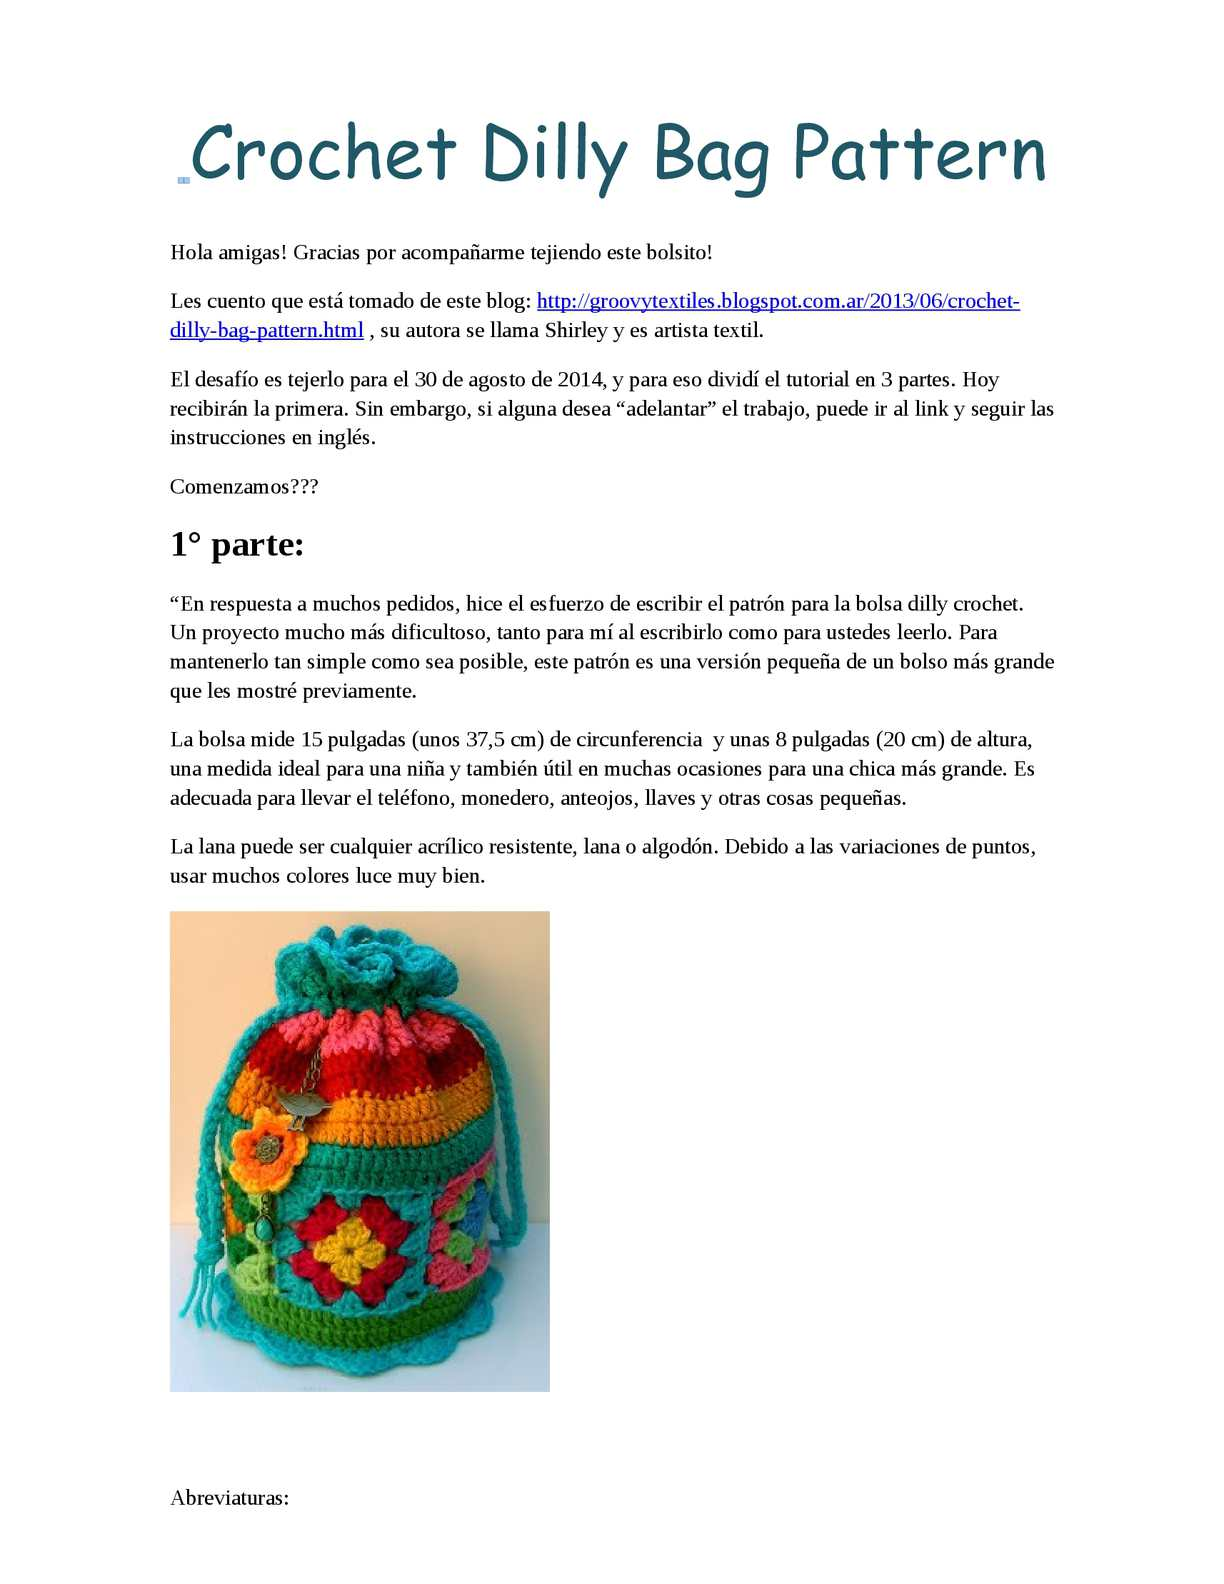 Calaméo - Crochet Dilly Bag Pattern 1°parte